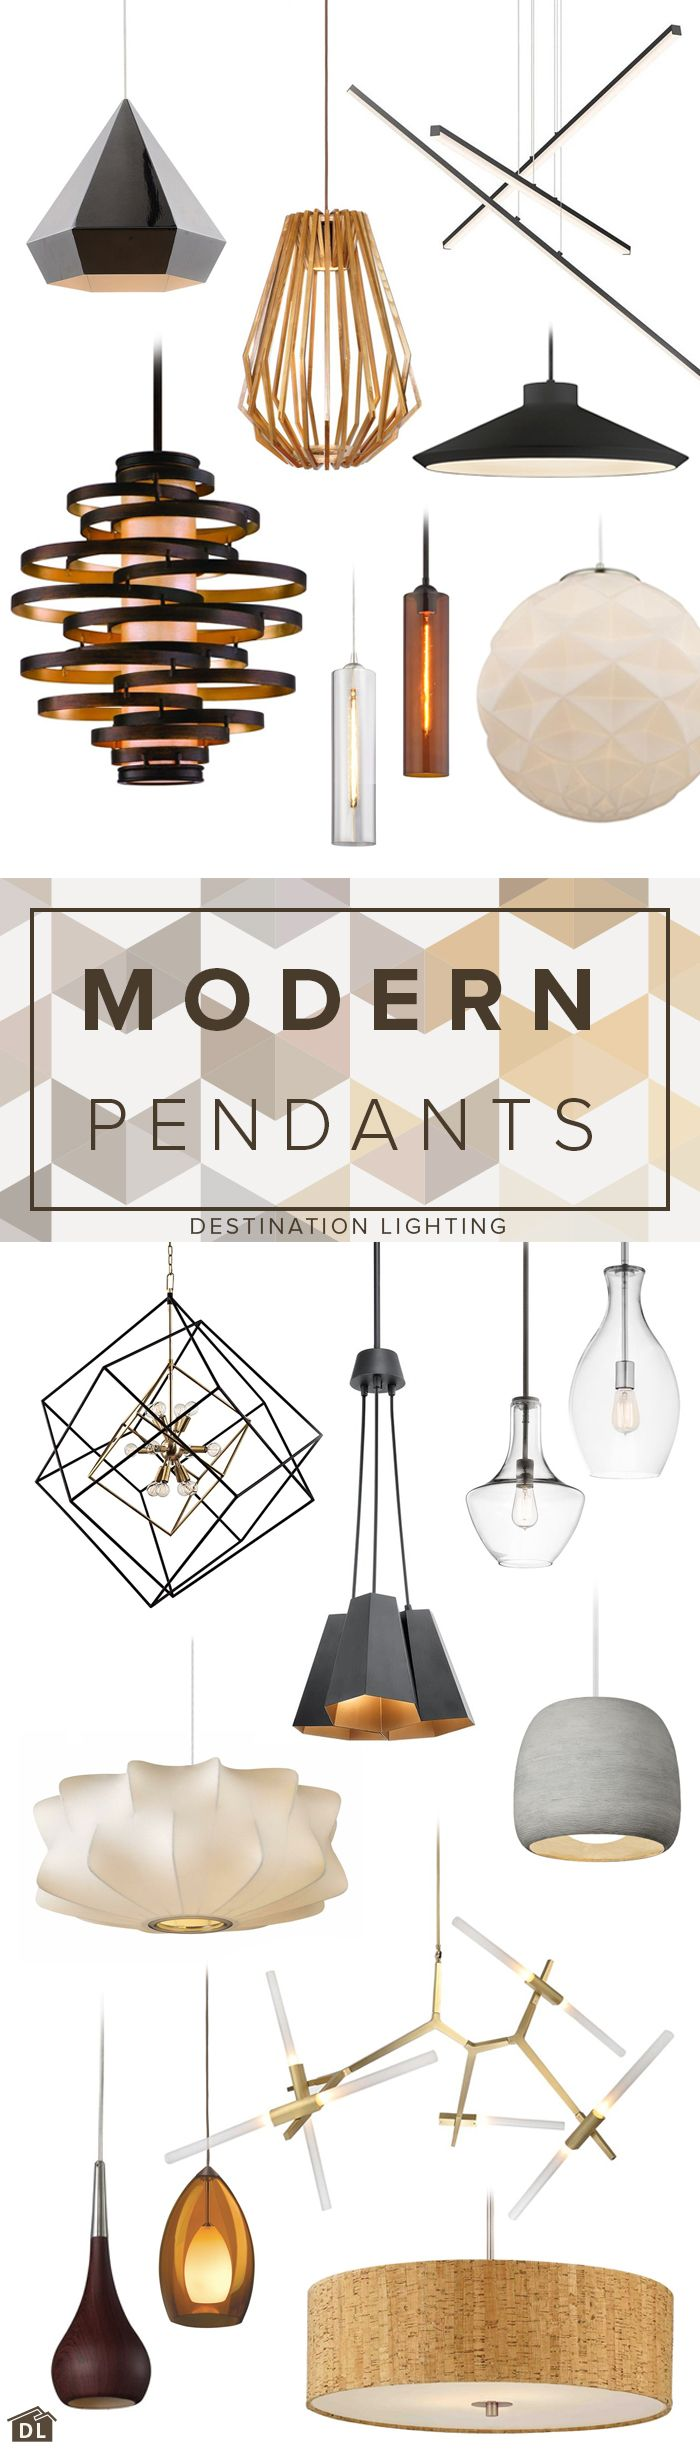 18 great looking modern pendant lights for every budget.